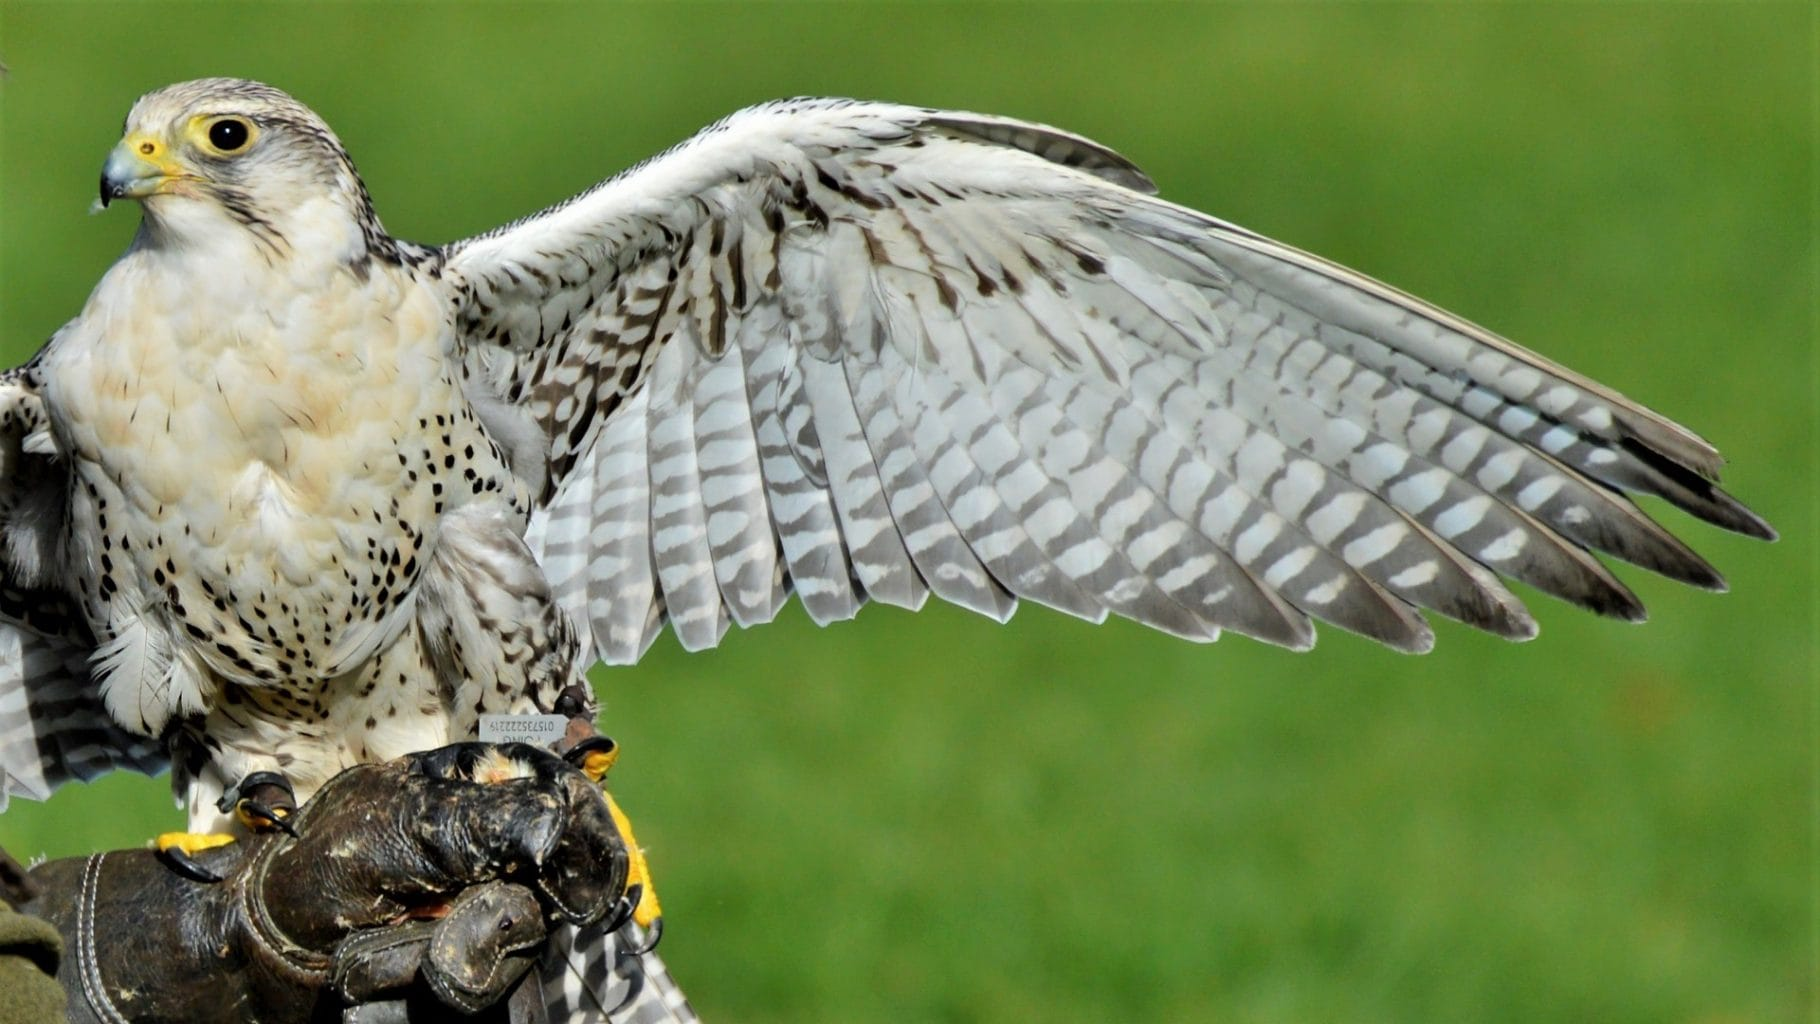 Image: Falcon on a handlers hand